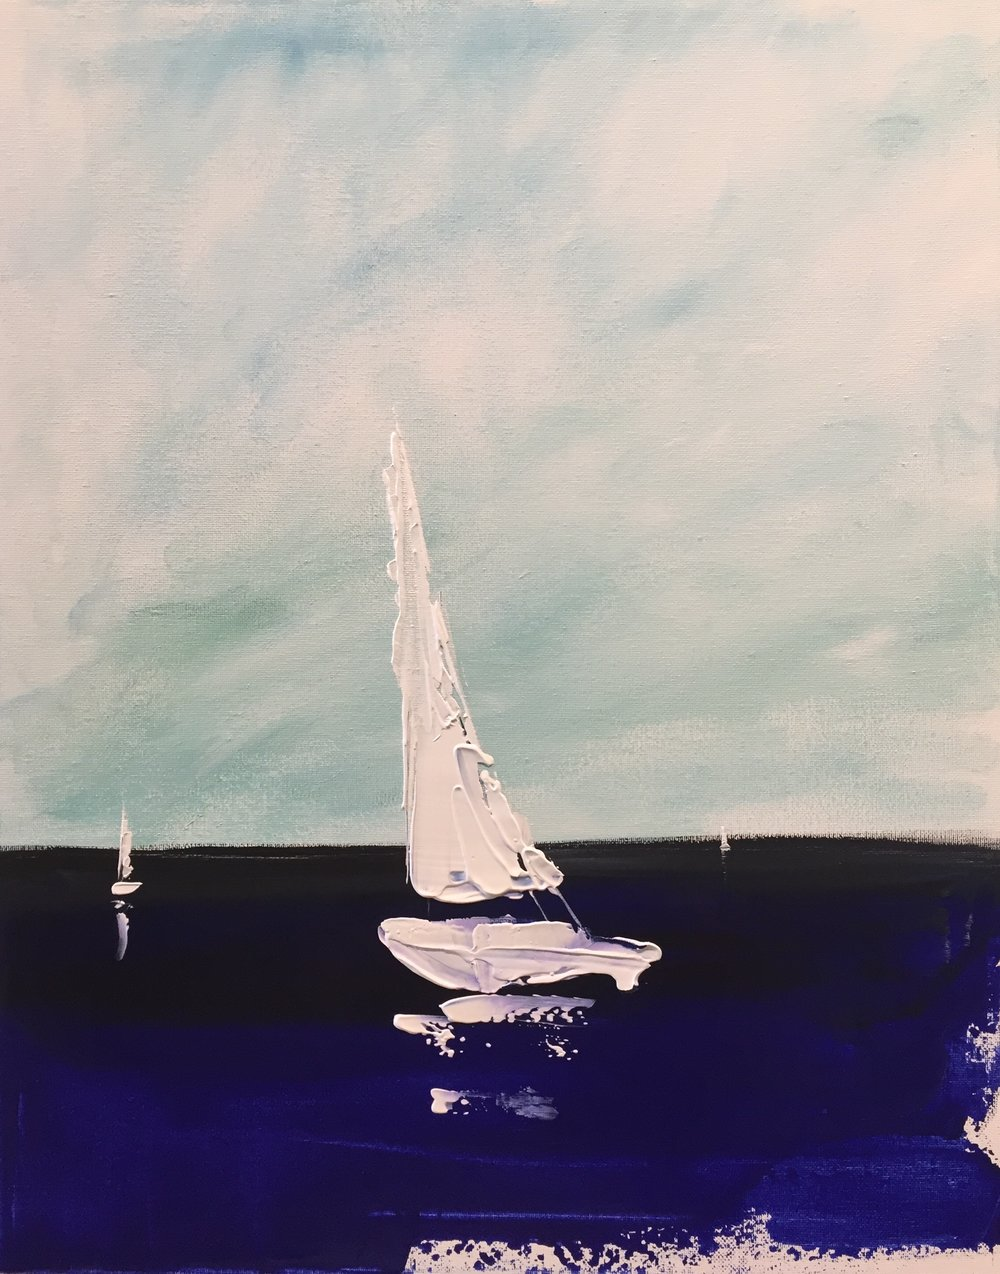 PINT & Pint: Smooth Sailing - Date: Monday, May 7, 2018Time: 6:00-8:00pmPlace: Barley StationPrice: $40/ guest* Choose your favourite colours !Drinks & food may be purchased from the Brew Pub